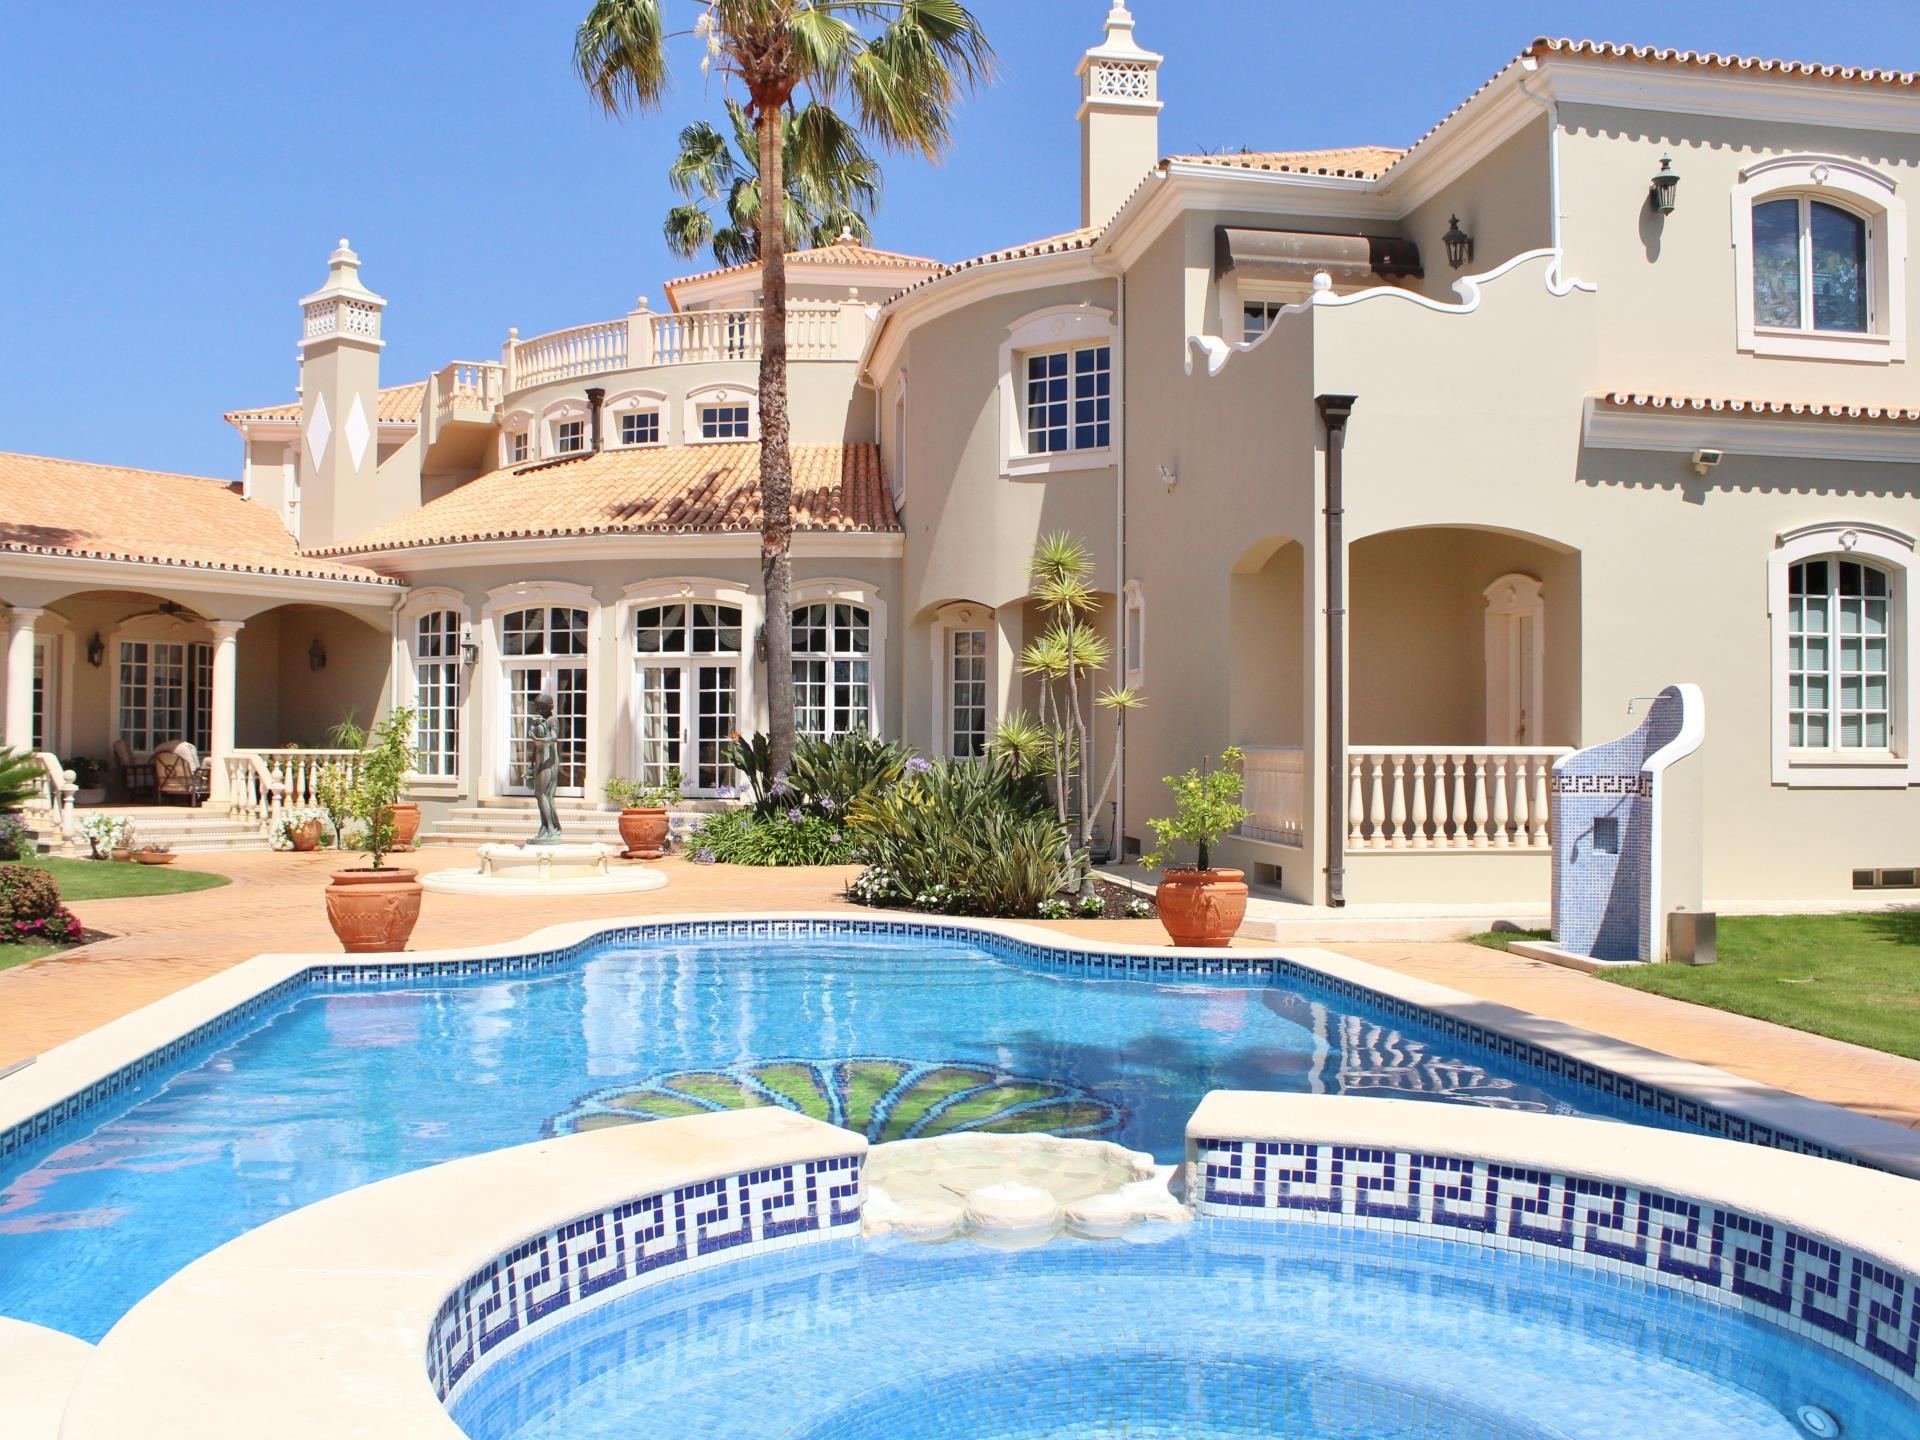 Maison unifamiliale pour l Vente à Detached house, 5 bedrooms, for Sale Loule, Algarve Portugal